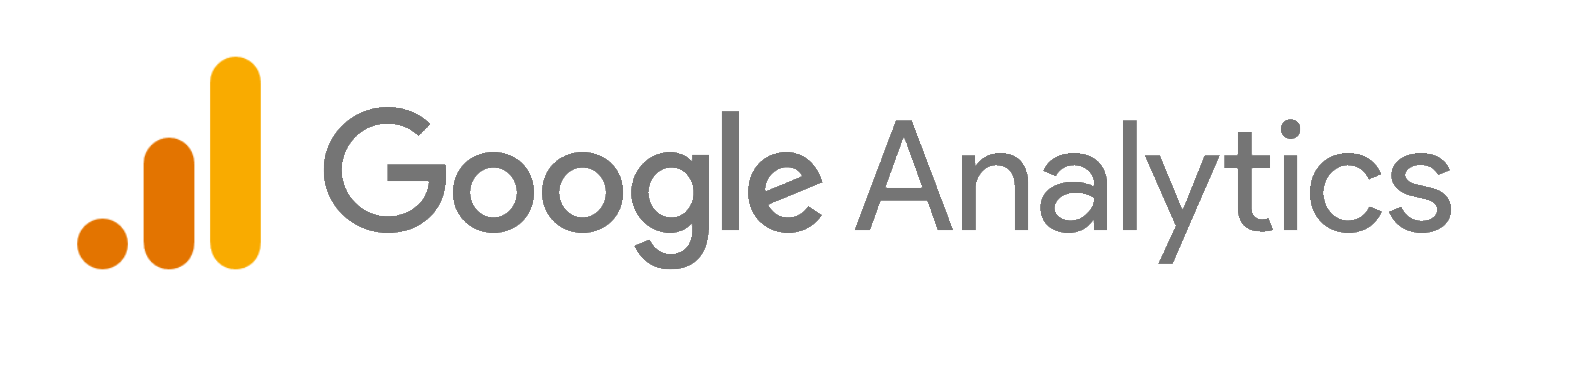 Google Analytics Logo Complete